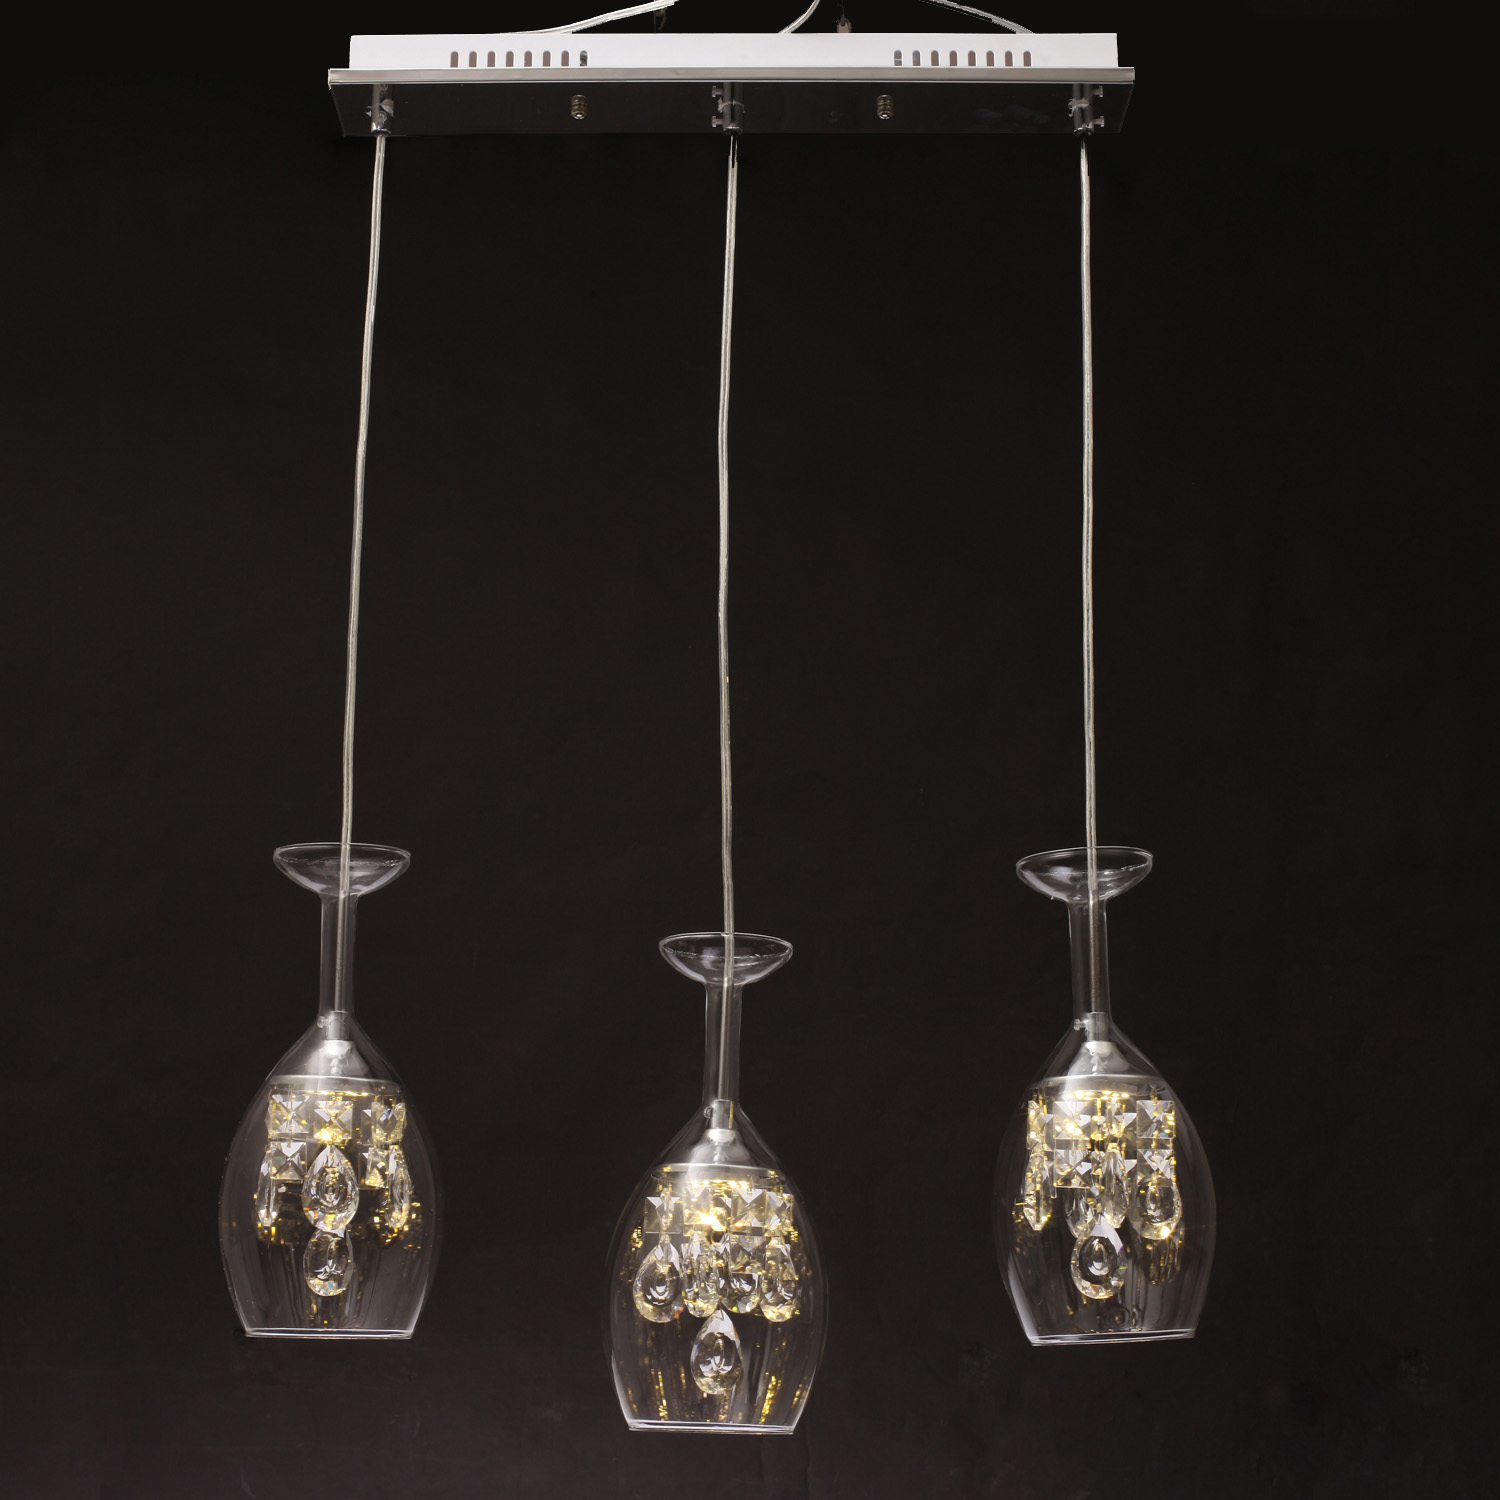 Glass led chandelier elegant modern ceiling light lamp for Modern chandelier lighting fixtures